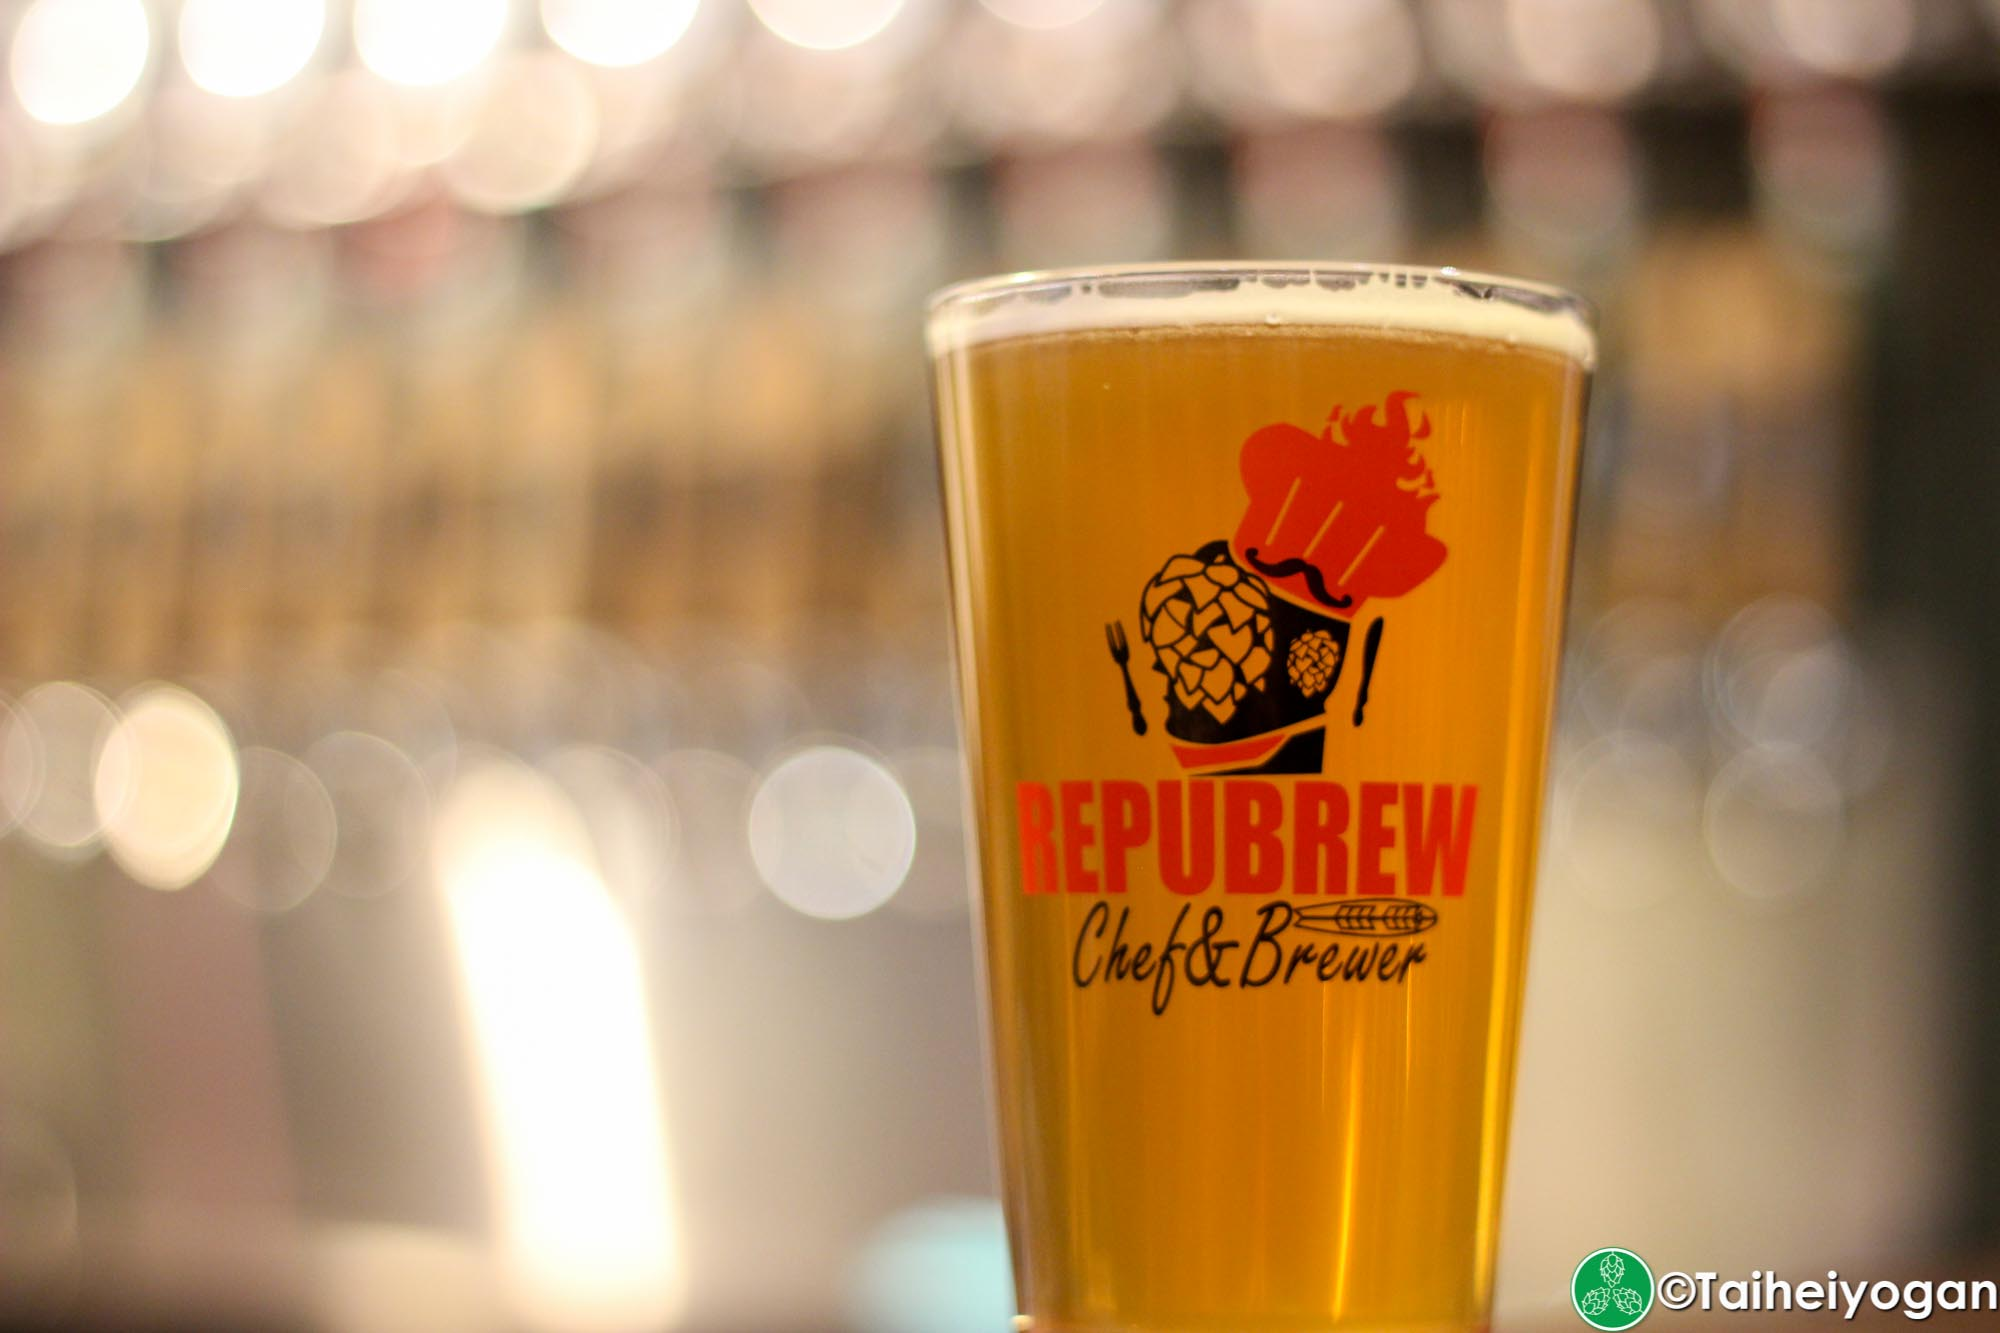 Repubrew - Beer